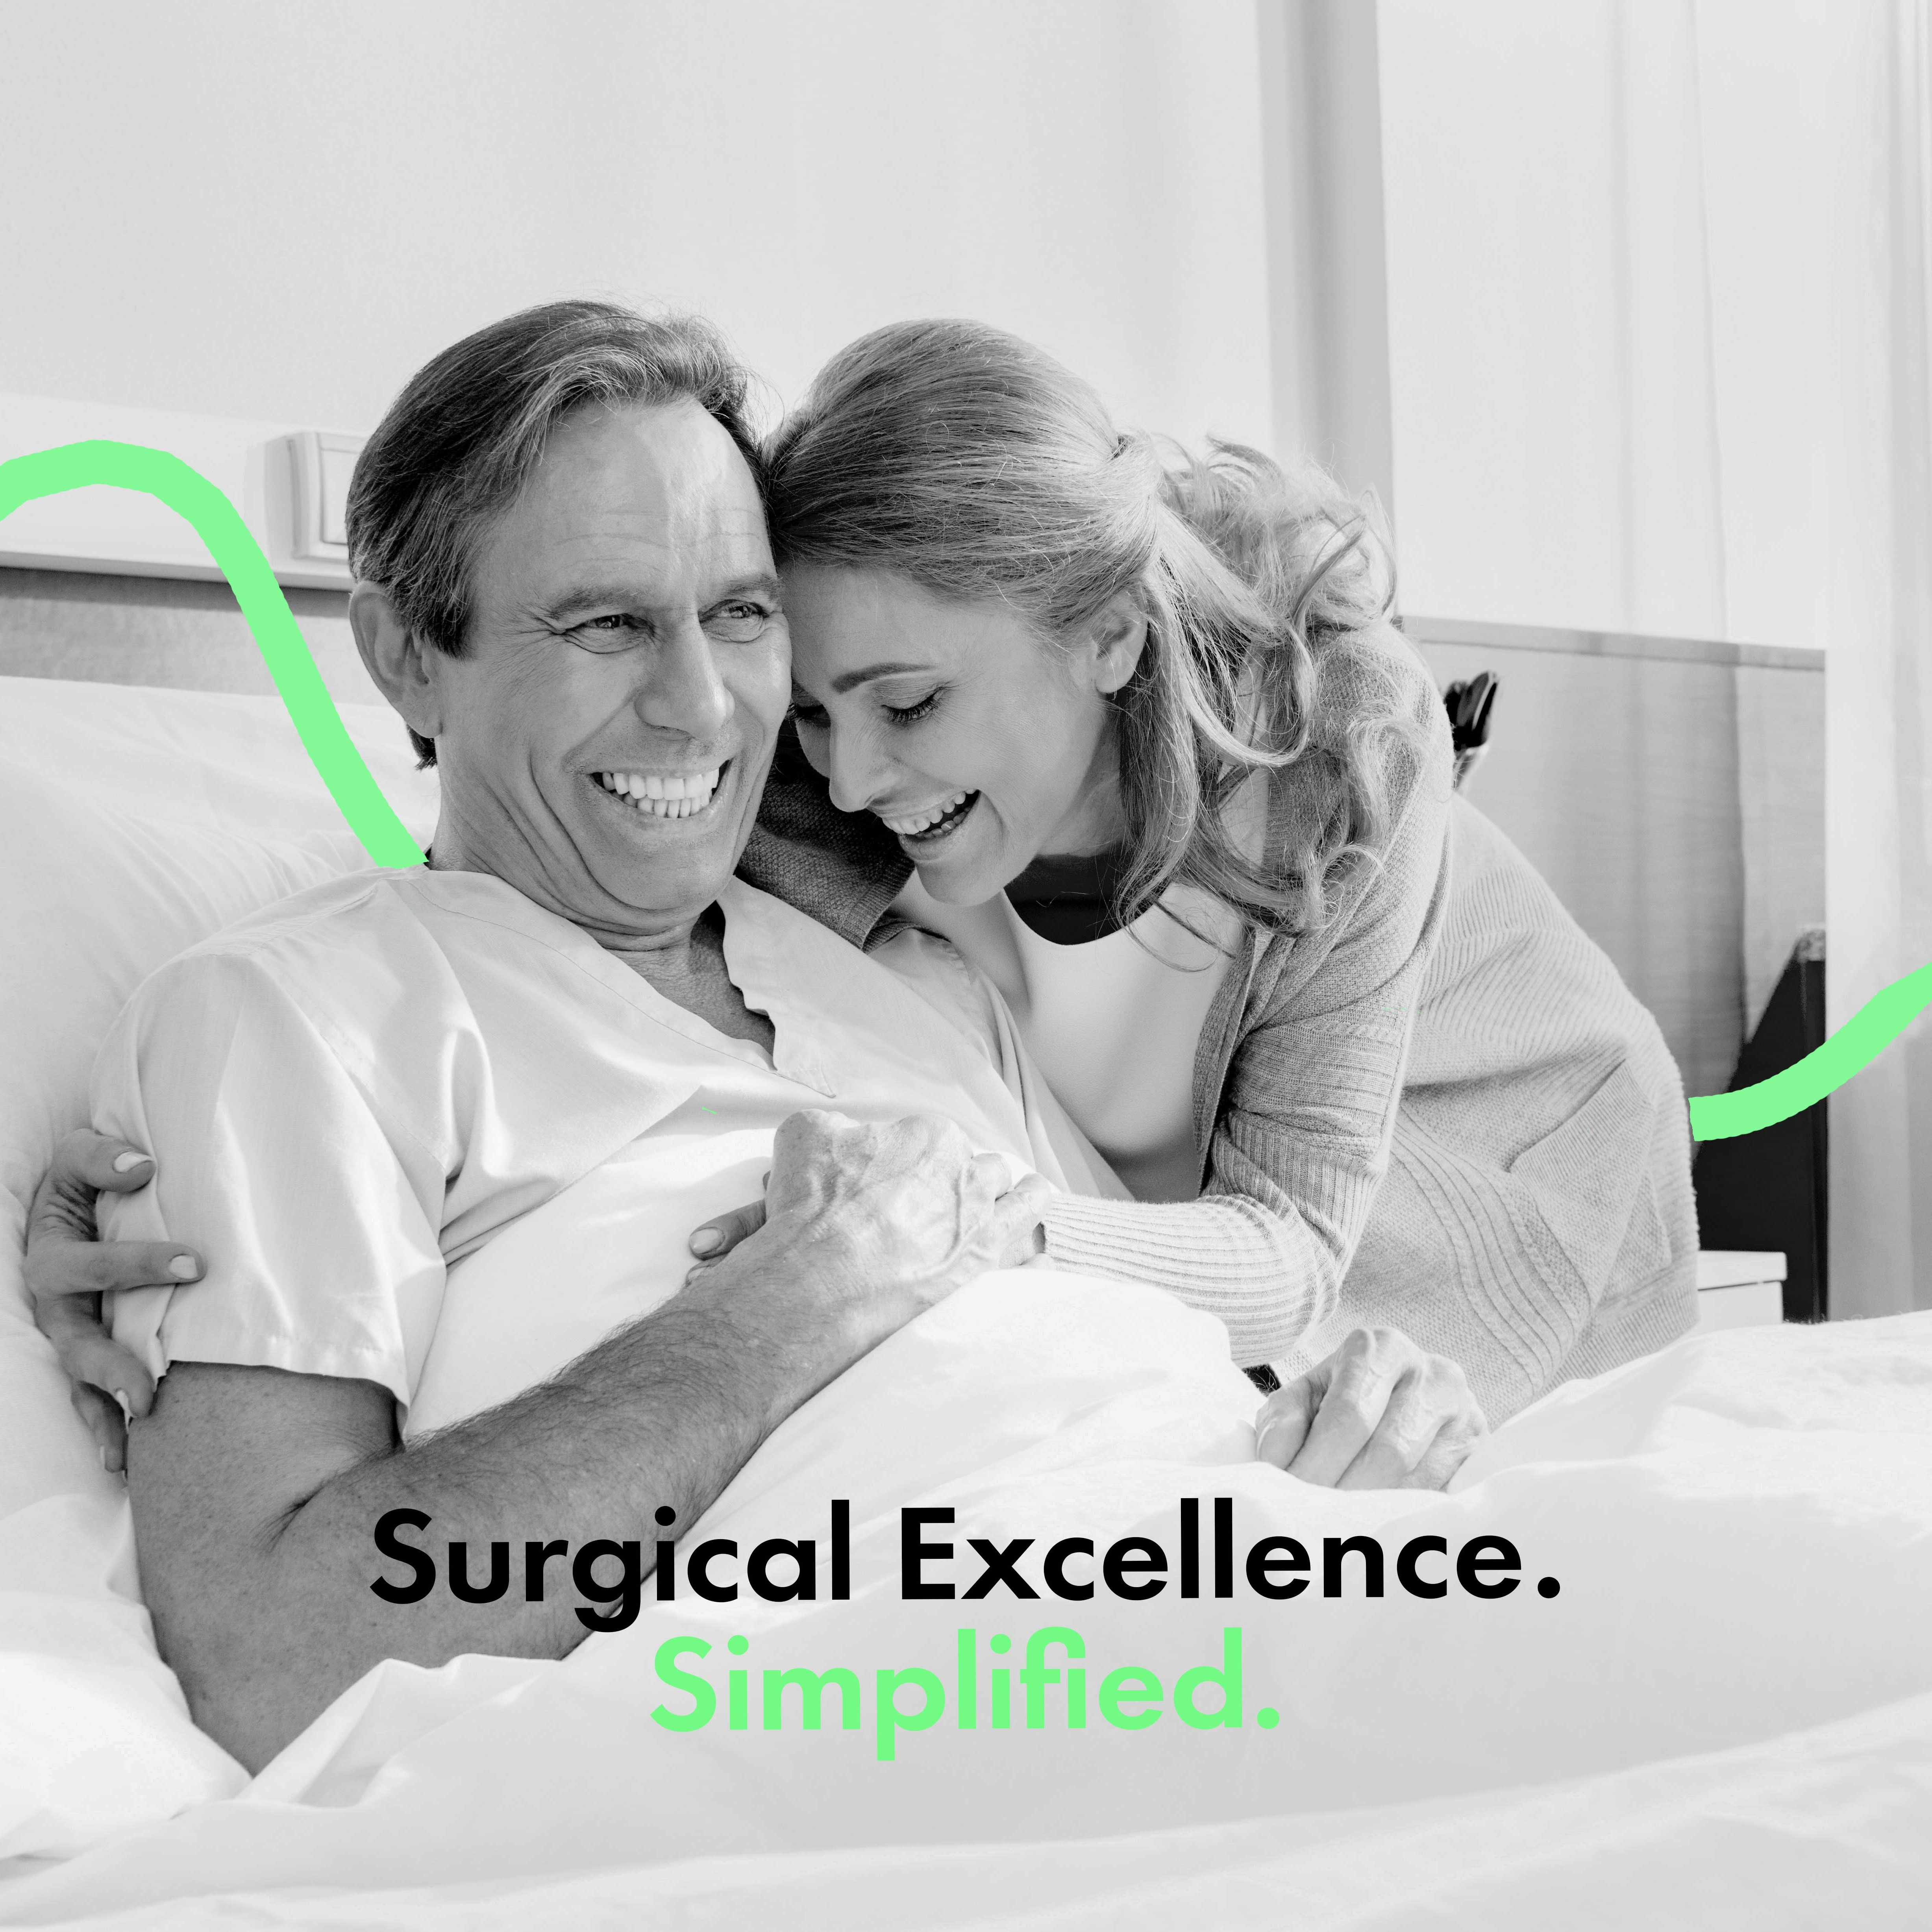 What is Surgical Excellence Simplified?